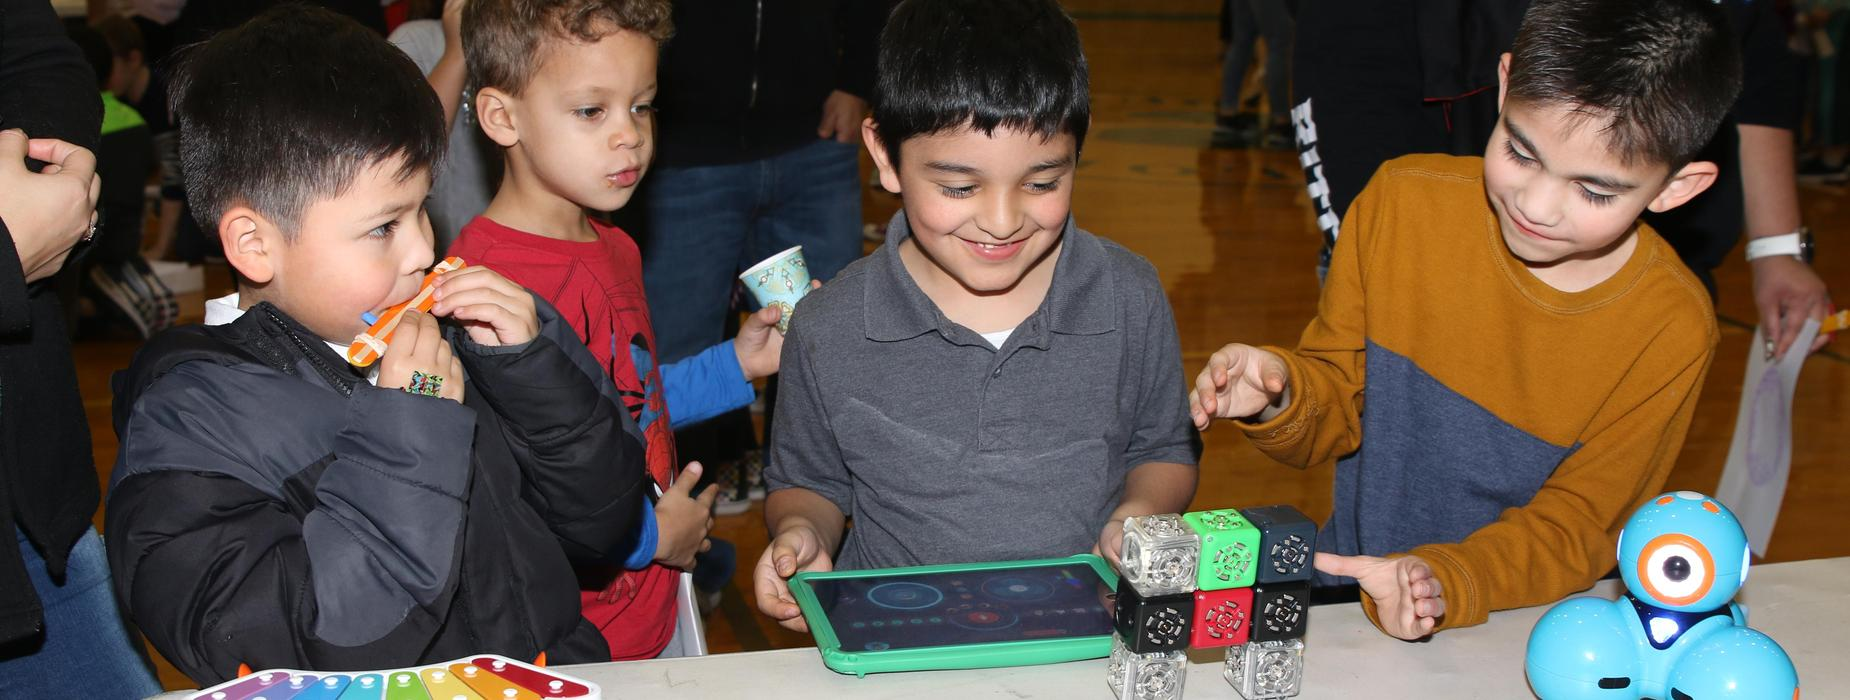 Students playing science games.